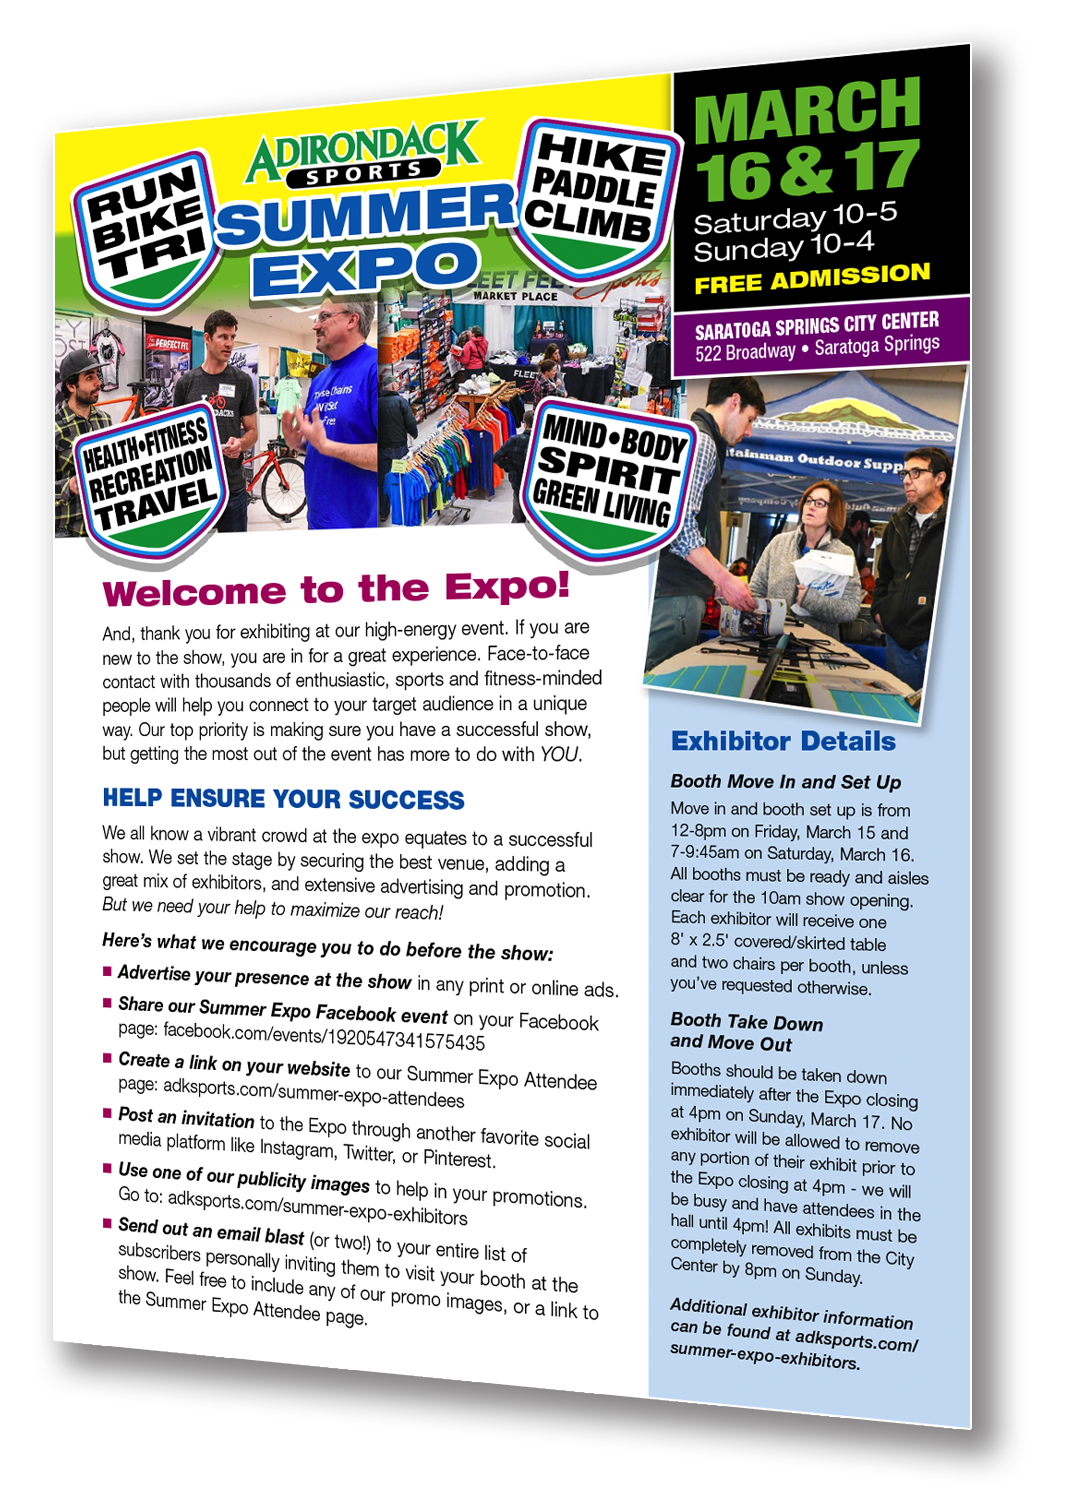 Click image to view the Exhibitor Success sheet PDF